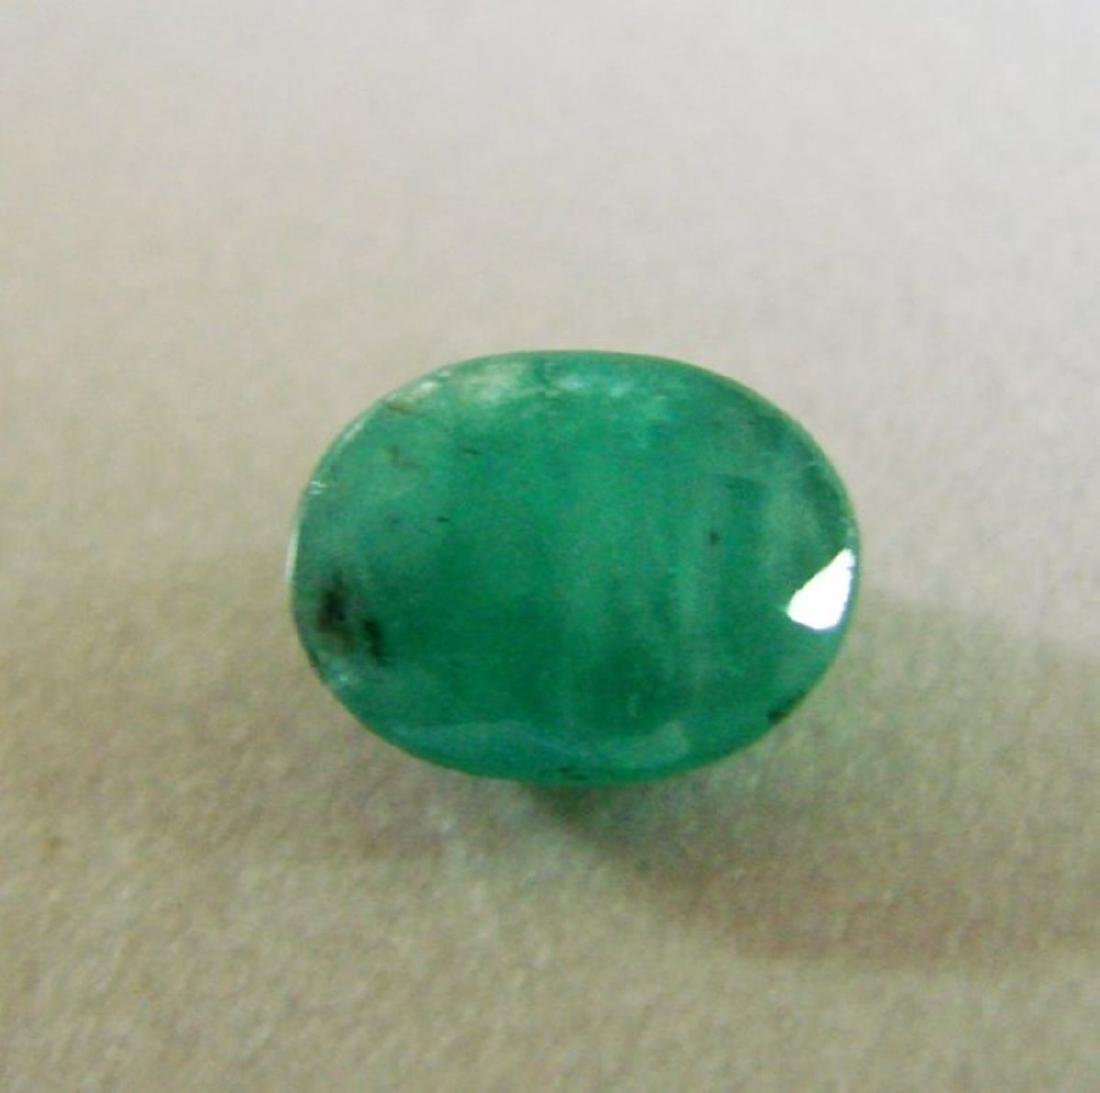 Natural Emerald Oval Facet 4.13Ct 10.7x8.1x6.8 mm - 2